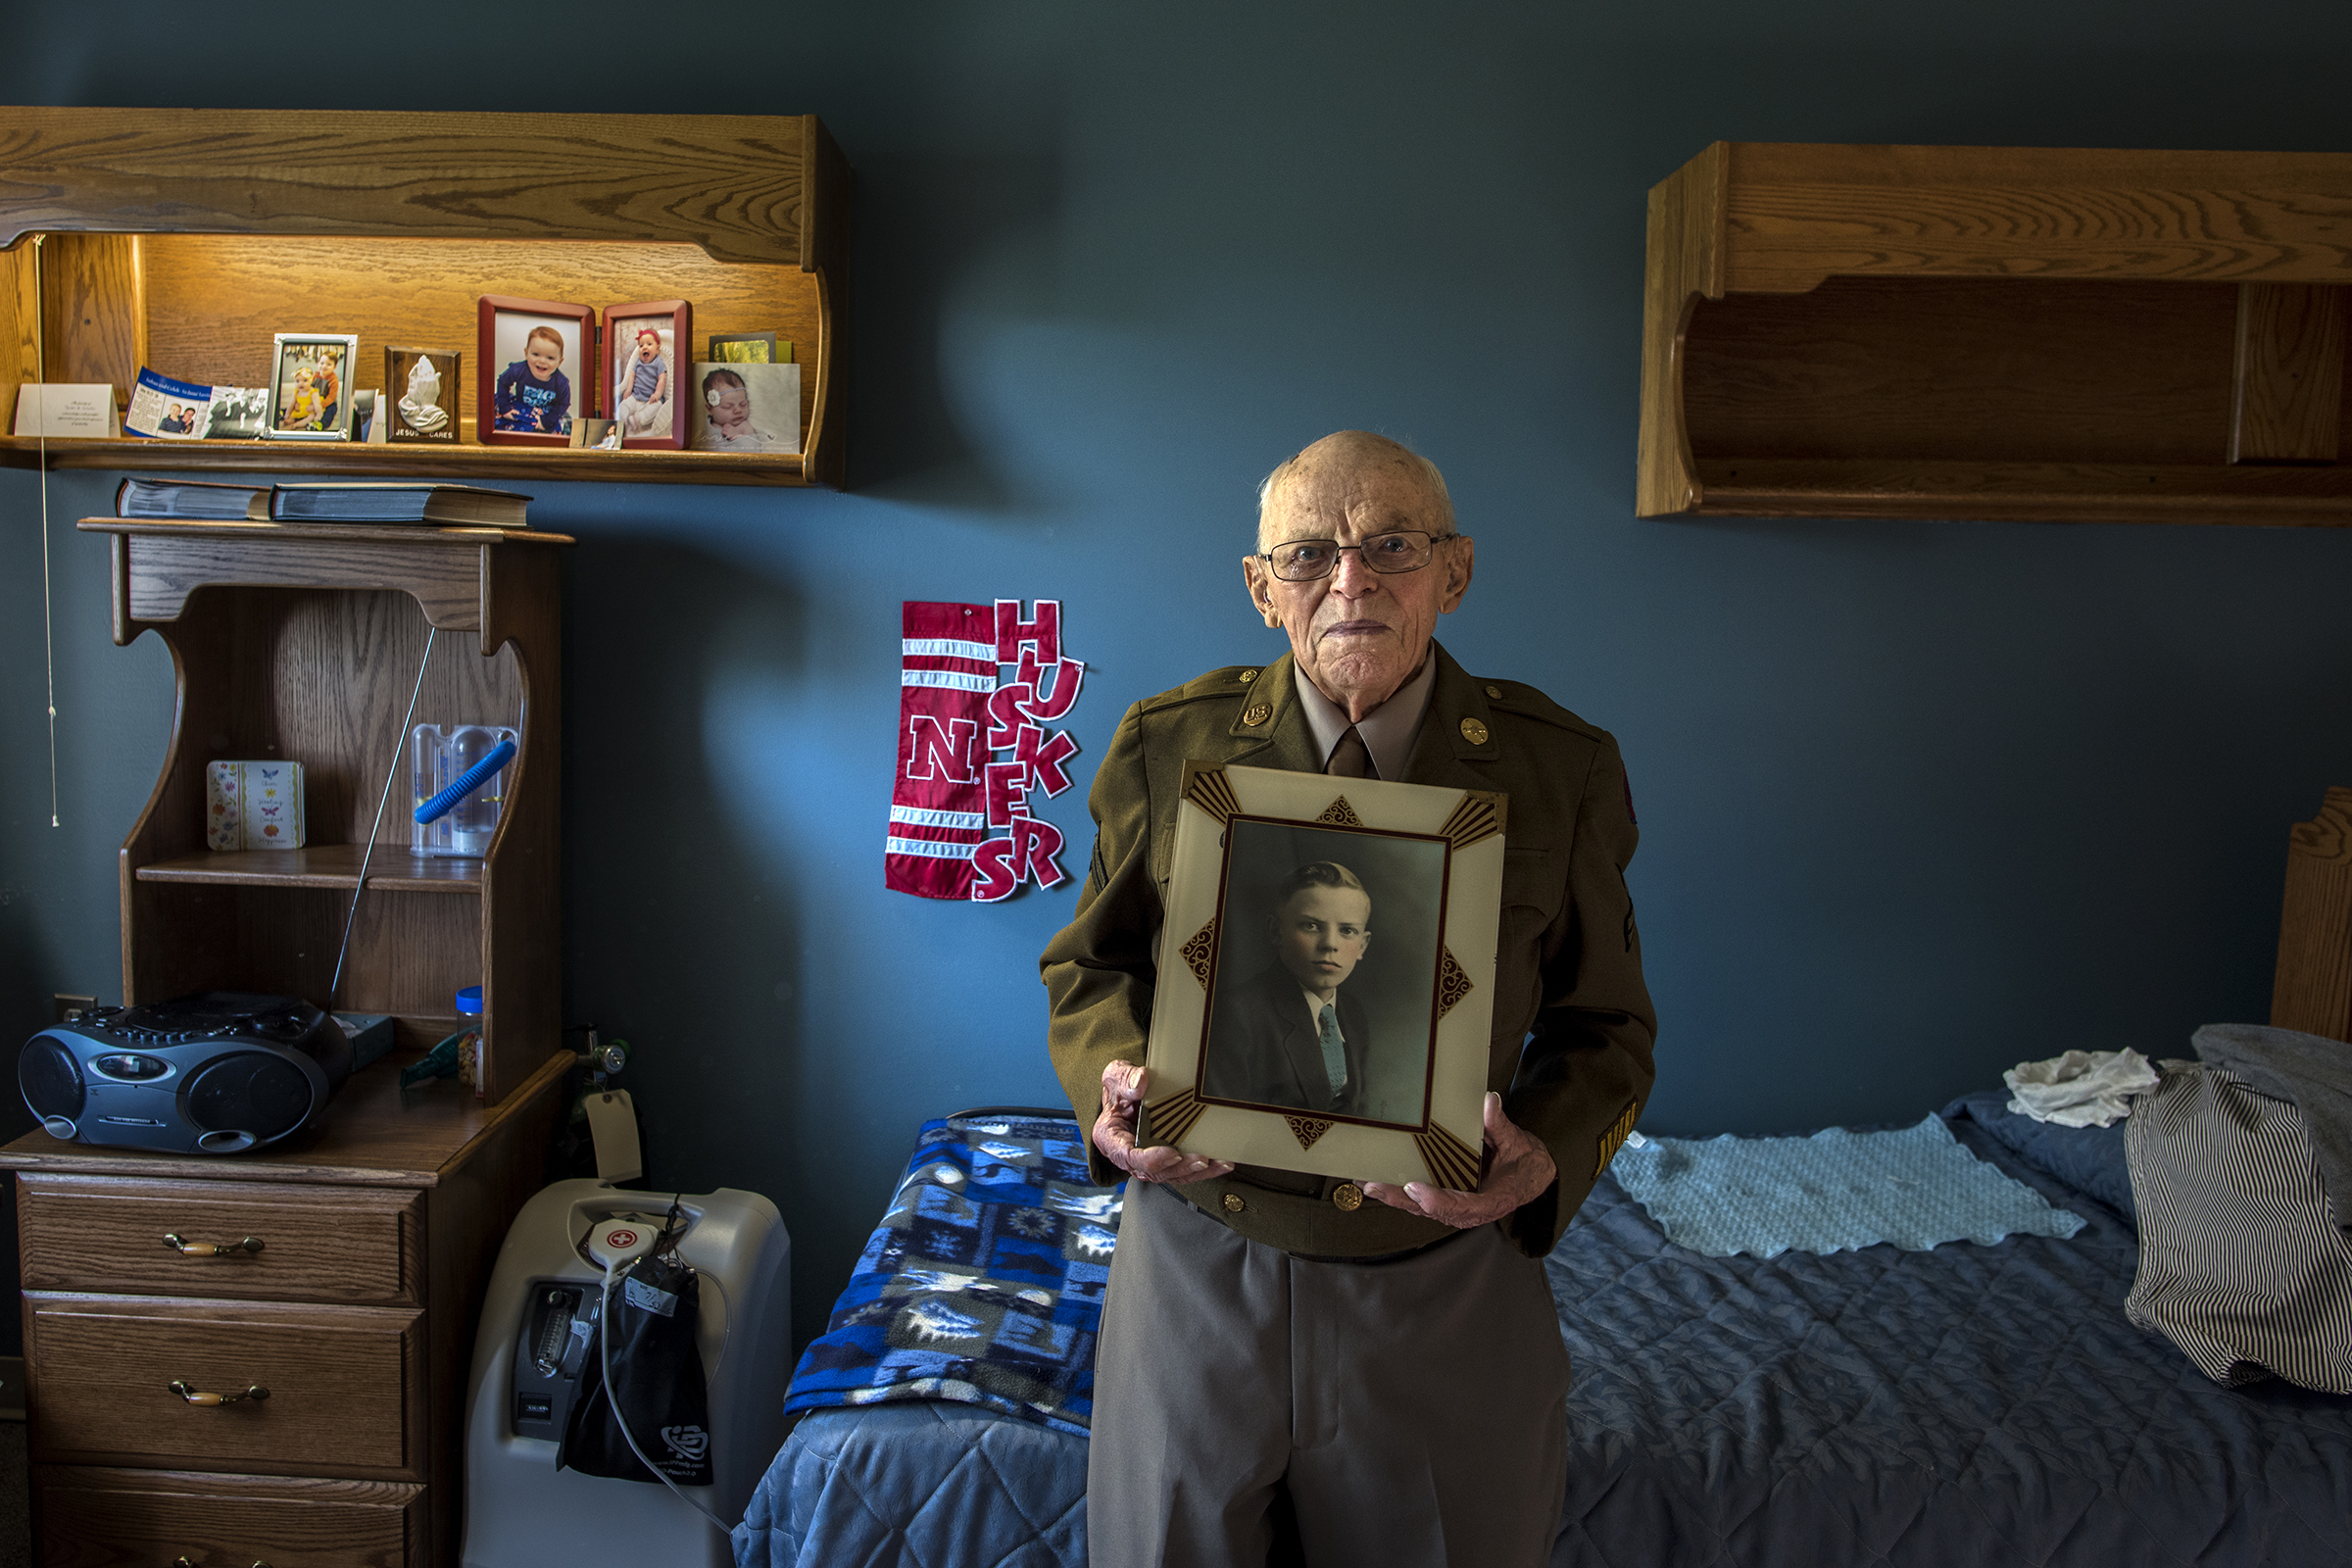 Harold Heins holding a photo of himself as a boy in his army uniform. He served in WWII and passed away in 2016 at 101 years old.